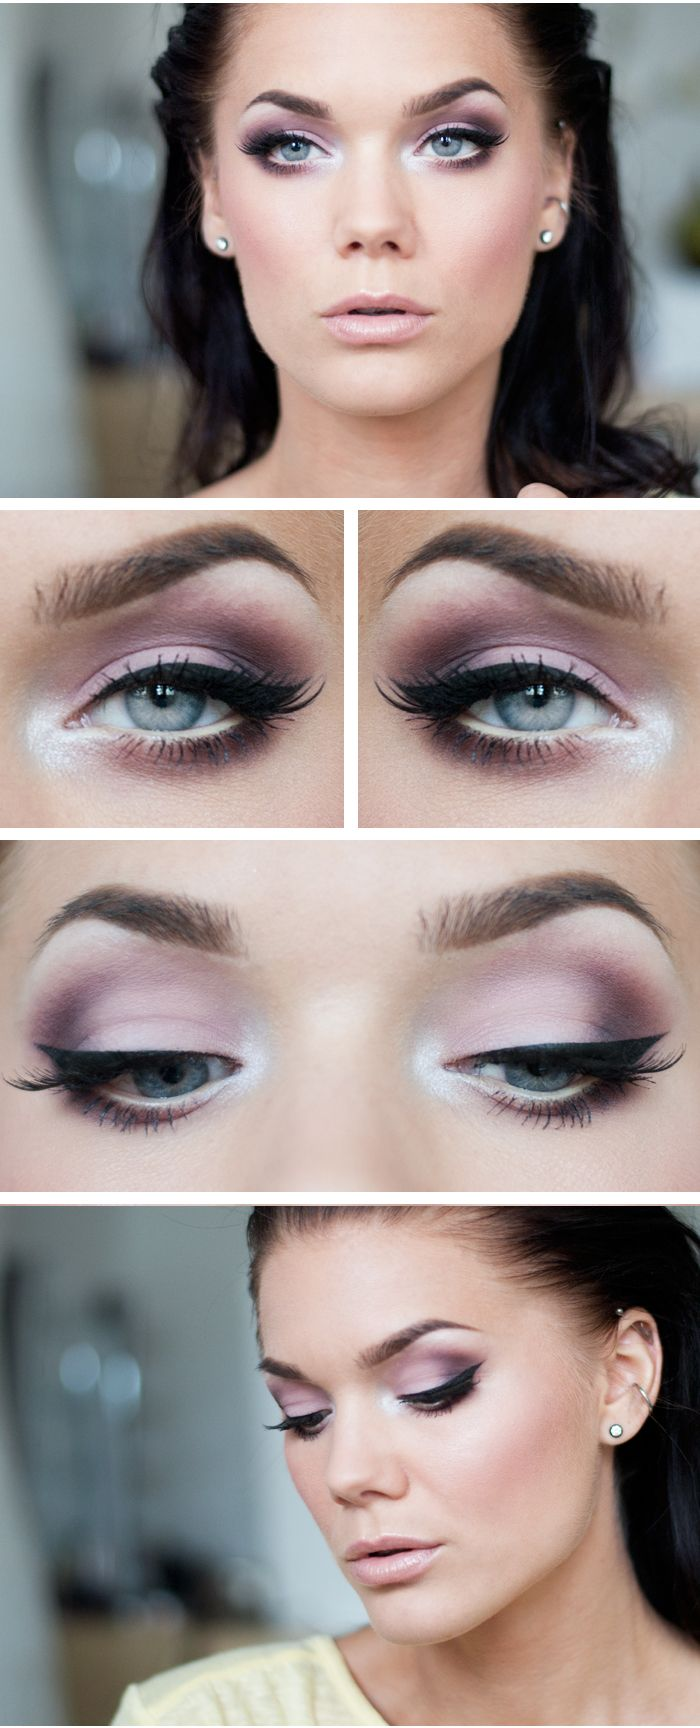 "Today's Look : ""Lilac"" -Linda Hallberg (the name says it all, soft, lilac all around) 06/13/13"